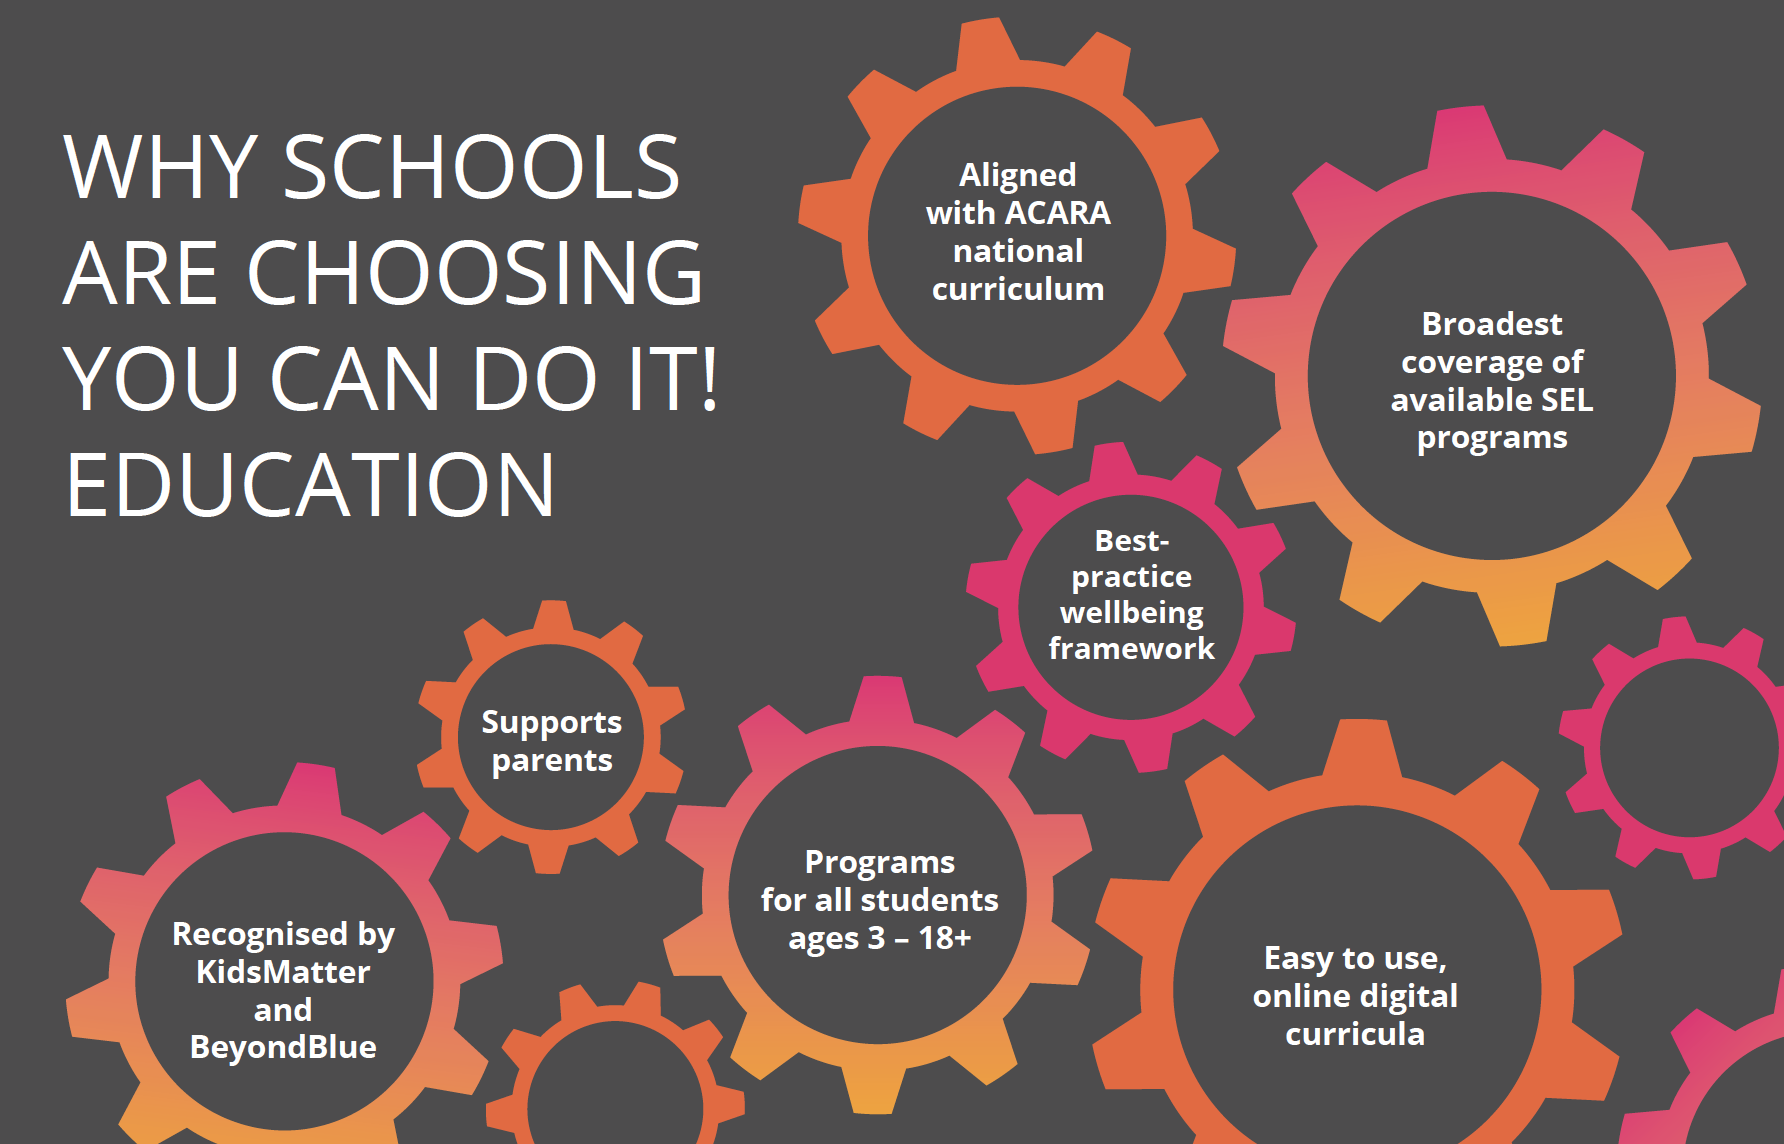 Why Schools are Choosing YCDI!